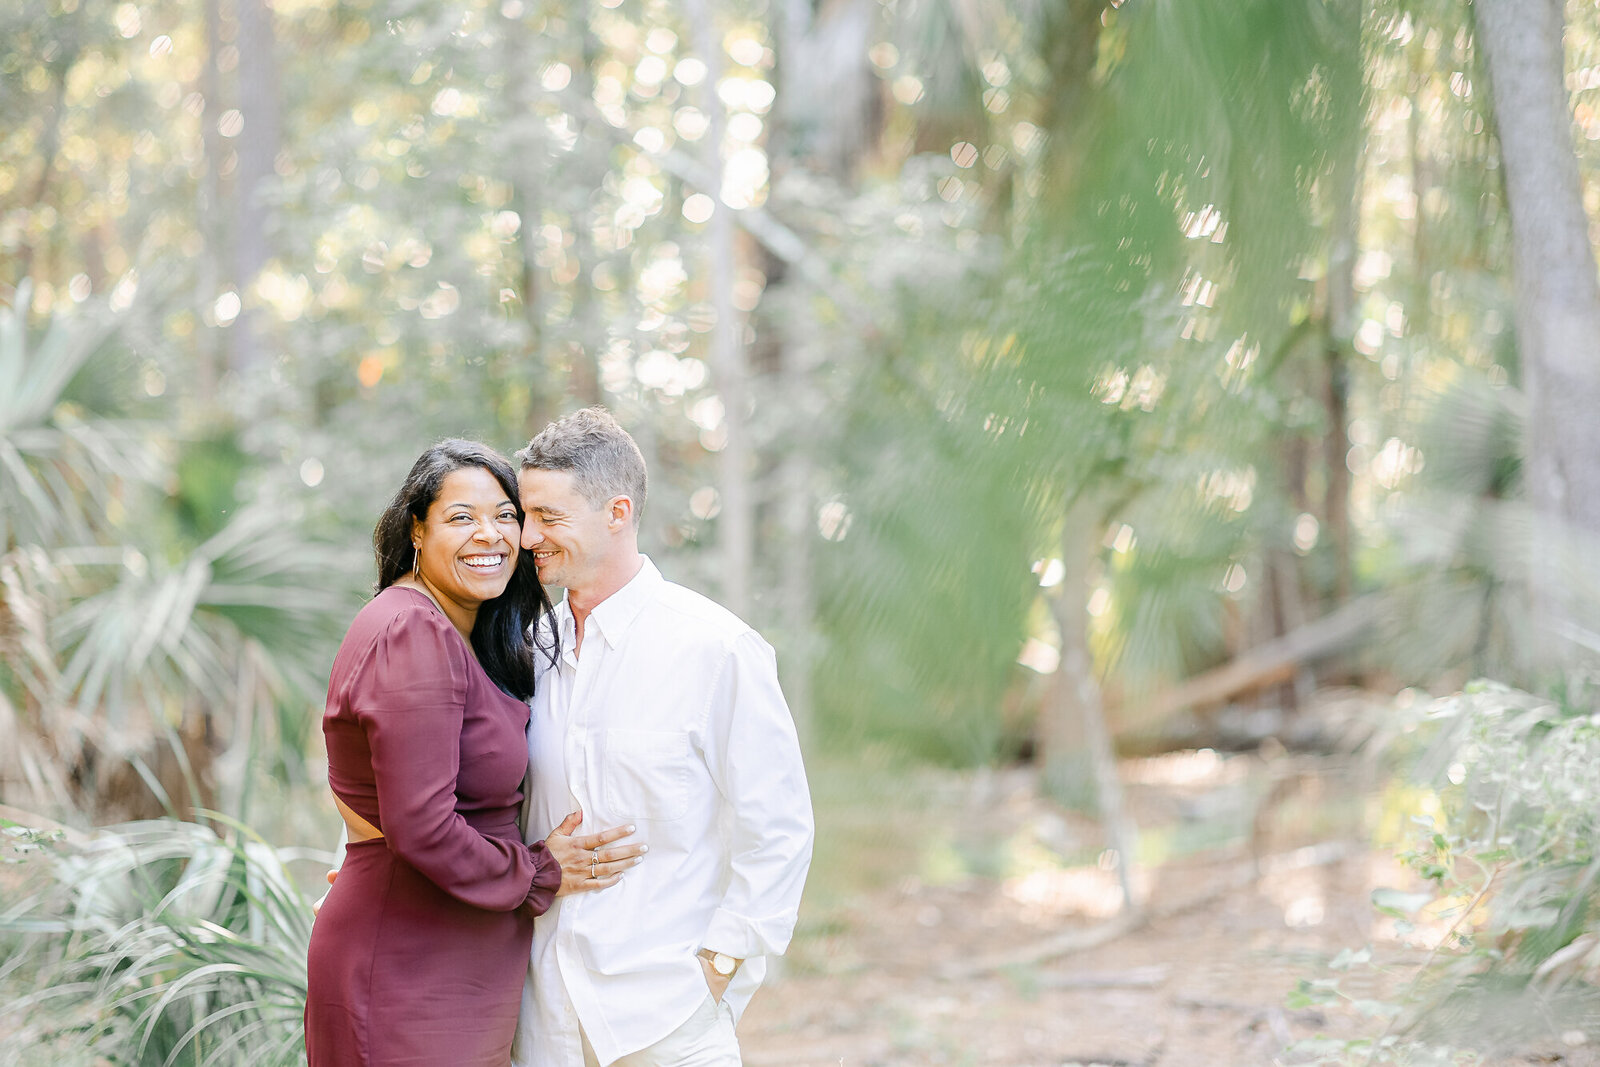 Man and Woman during their engagement session in Savannah GA.